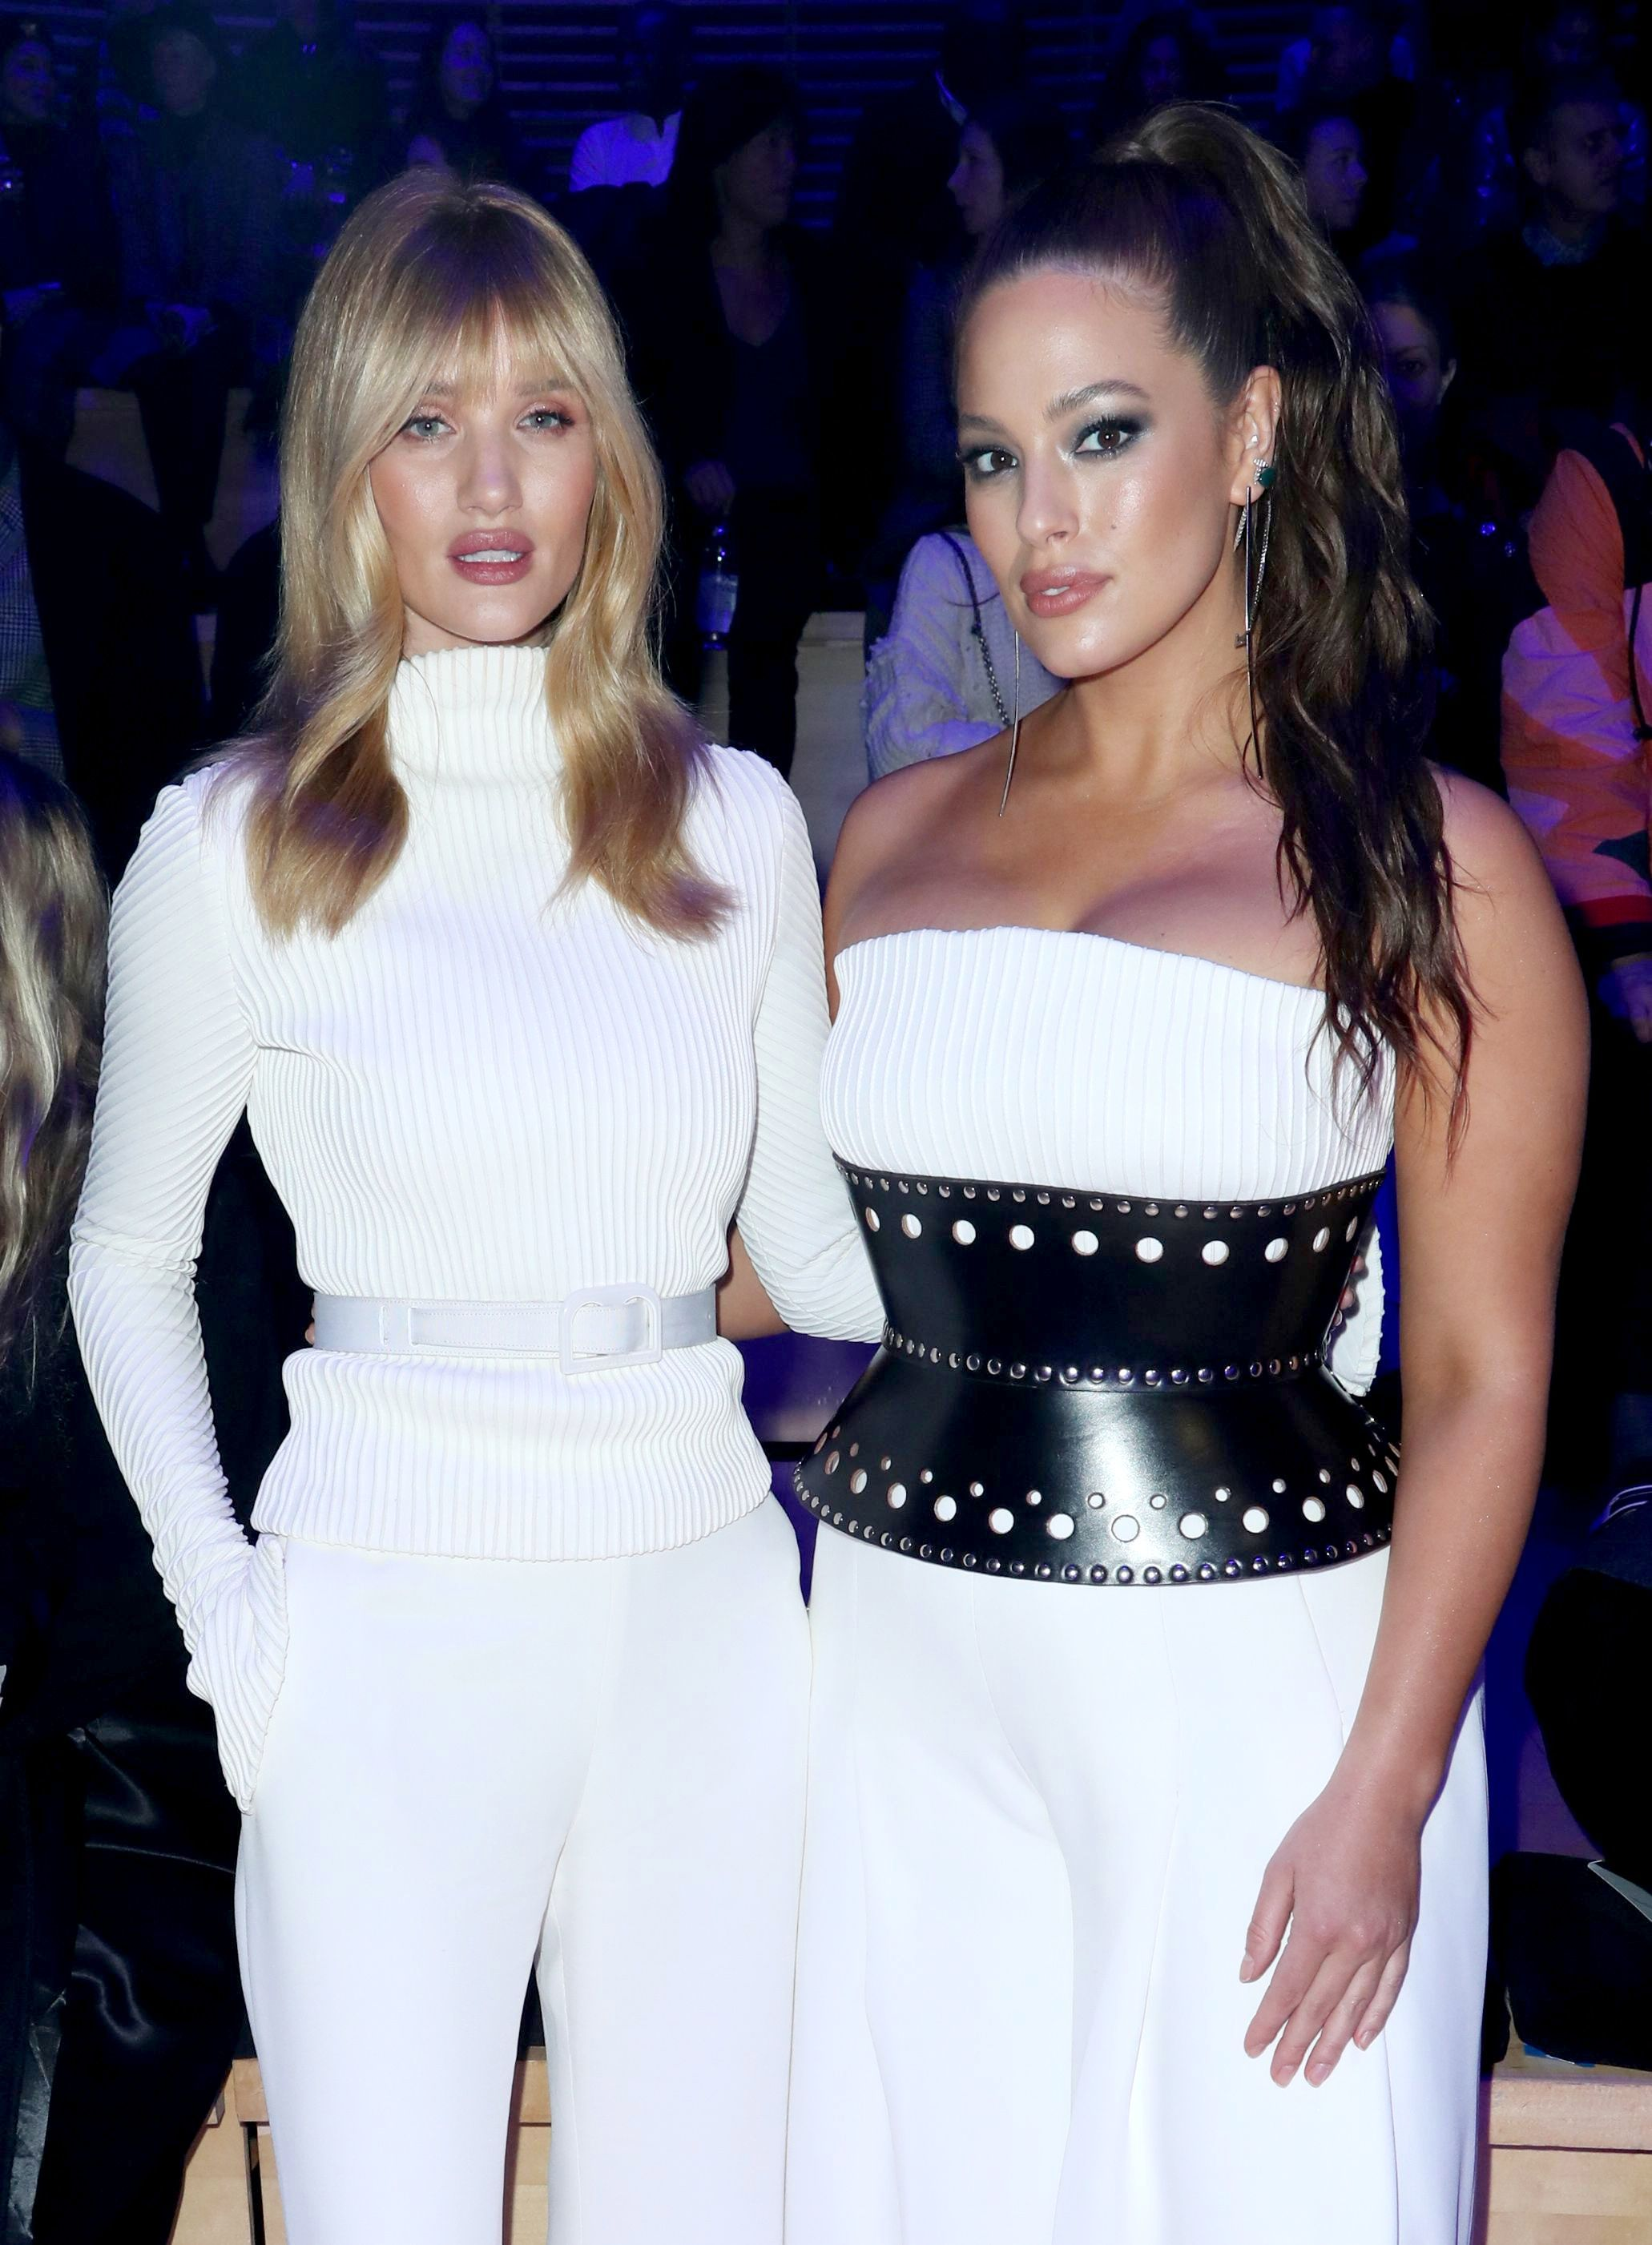 Rosie Huntington Whiteley and Ashley Graham appear in the front row of the Brandon Maxwell show for Fall/Winter 2018 at New York Fashion Week on Feb. 11, 2018.